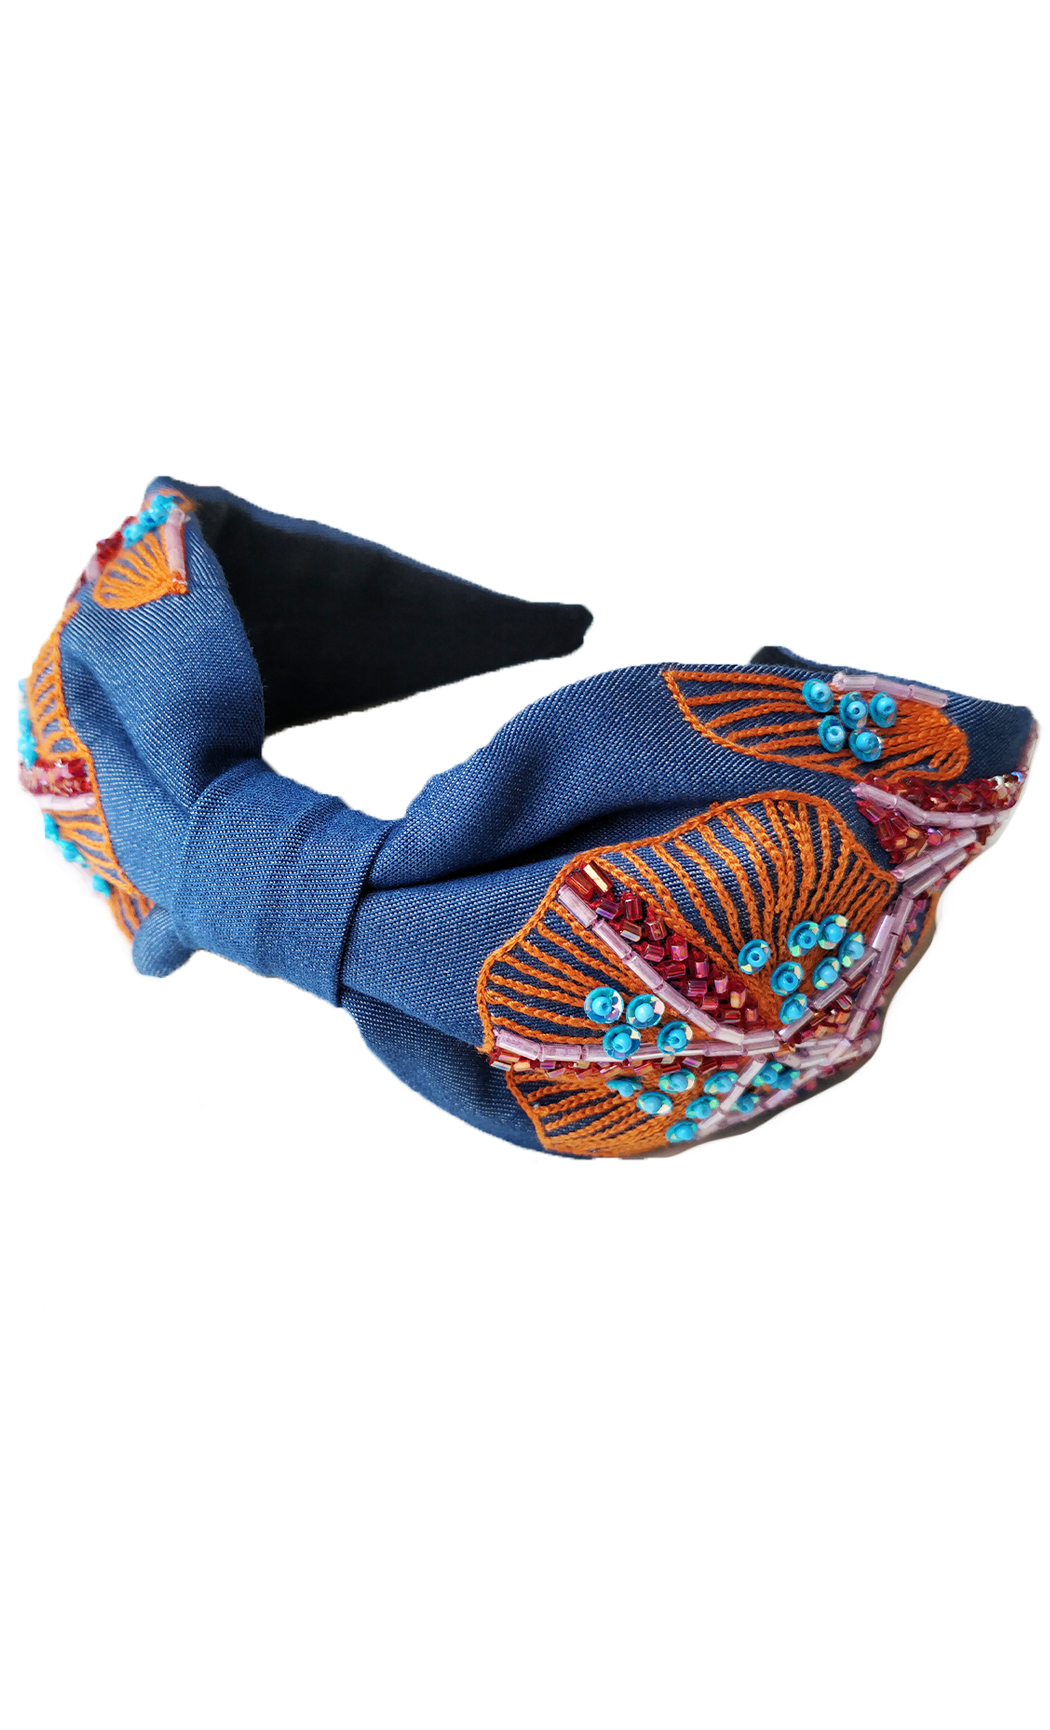 Blue and Orange Jelly Fish Hairband. Buy Online